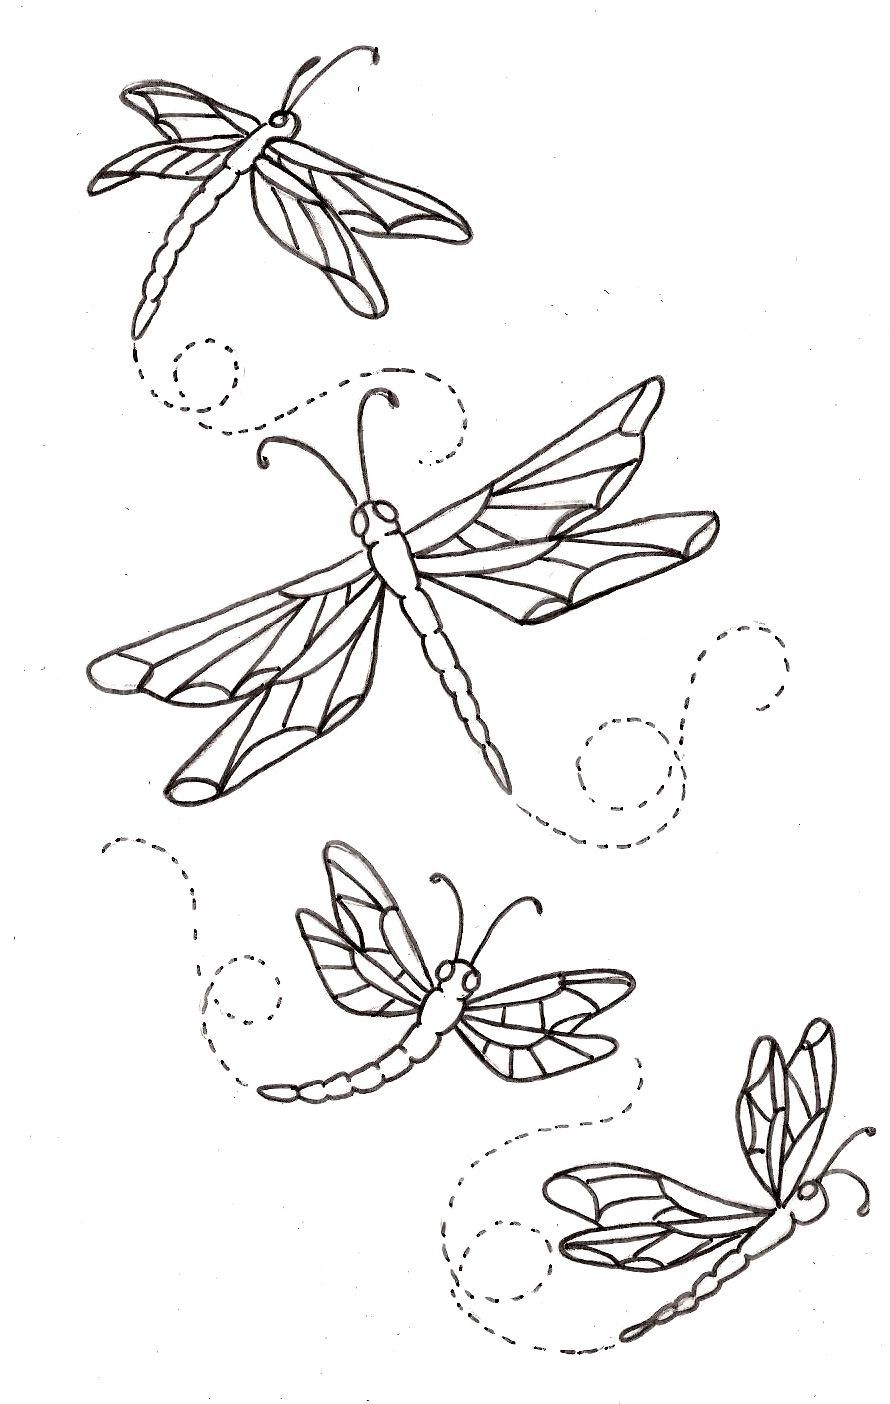 Coloring in dragonflies - Dragonflies Maybe Stamping Or Woodburning